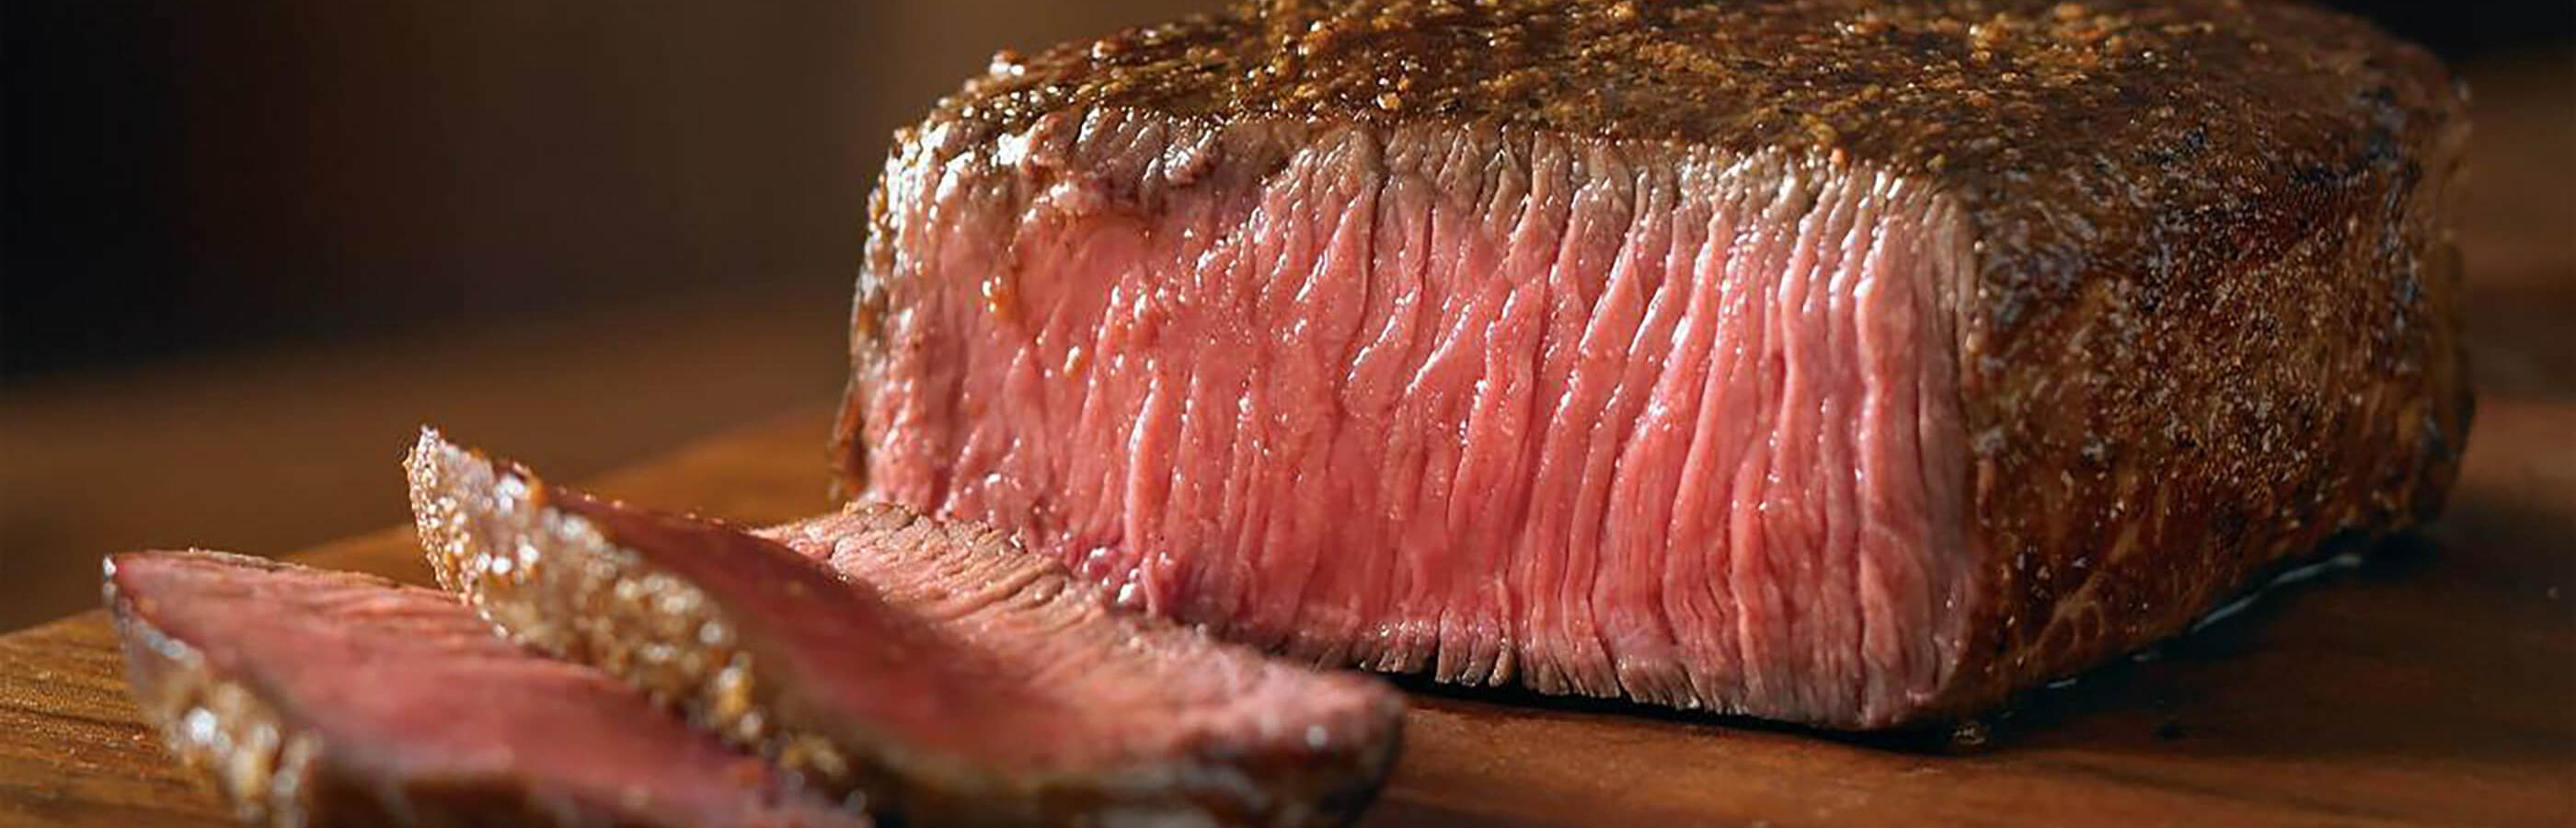 Steak From Outback Steakhouse